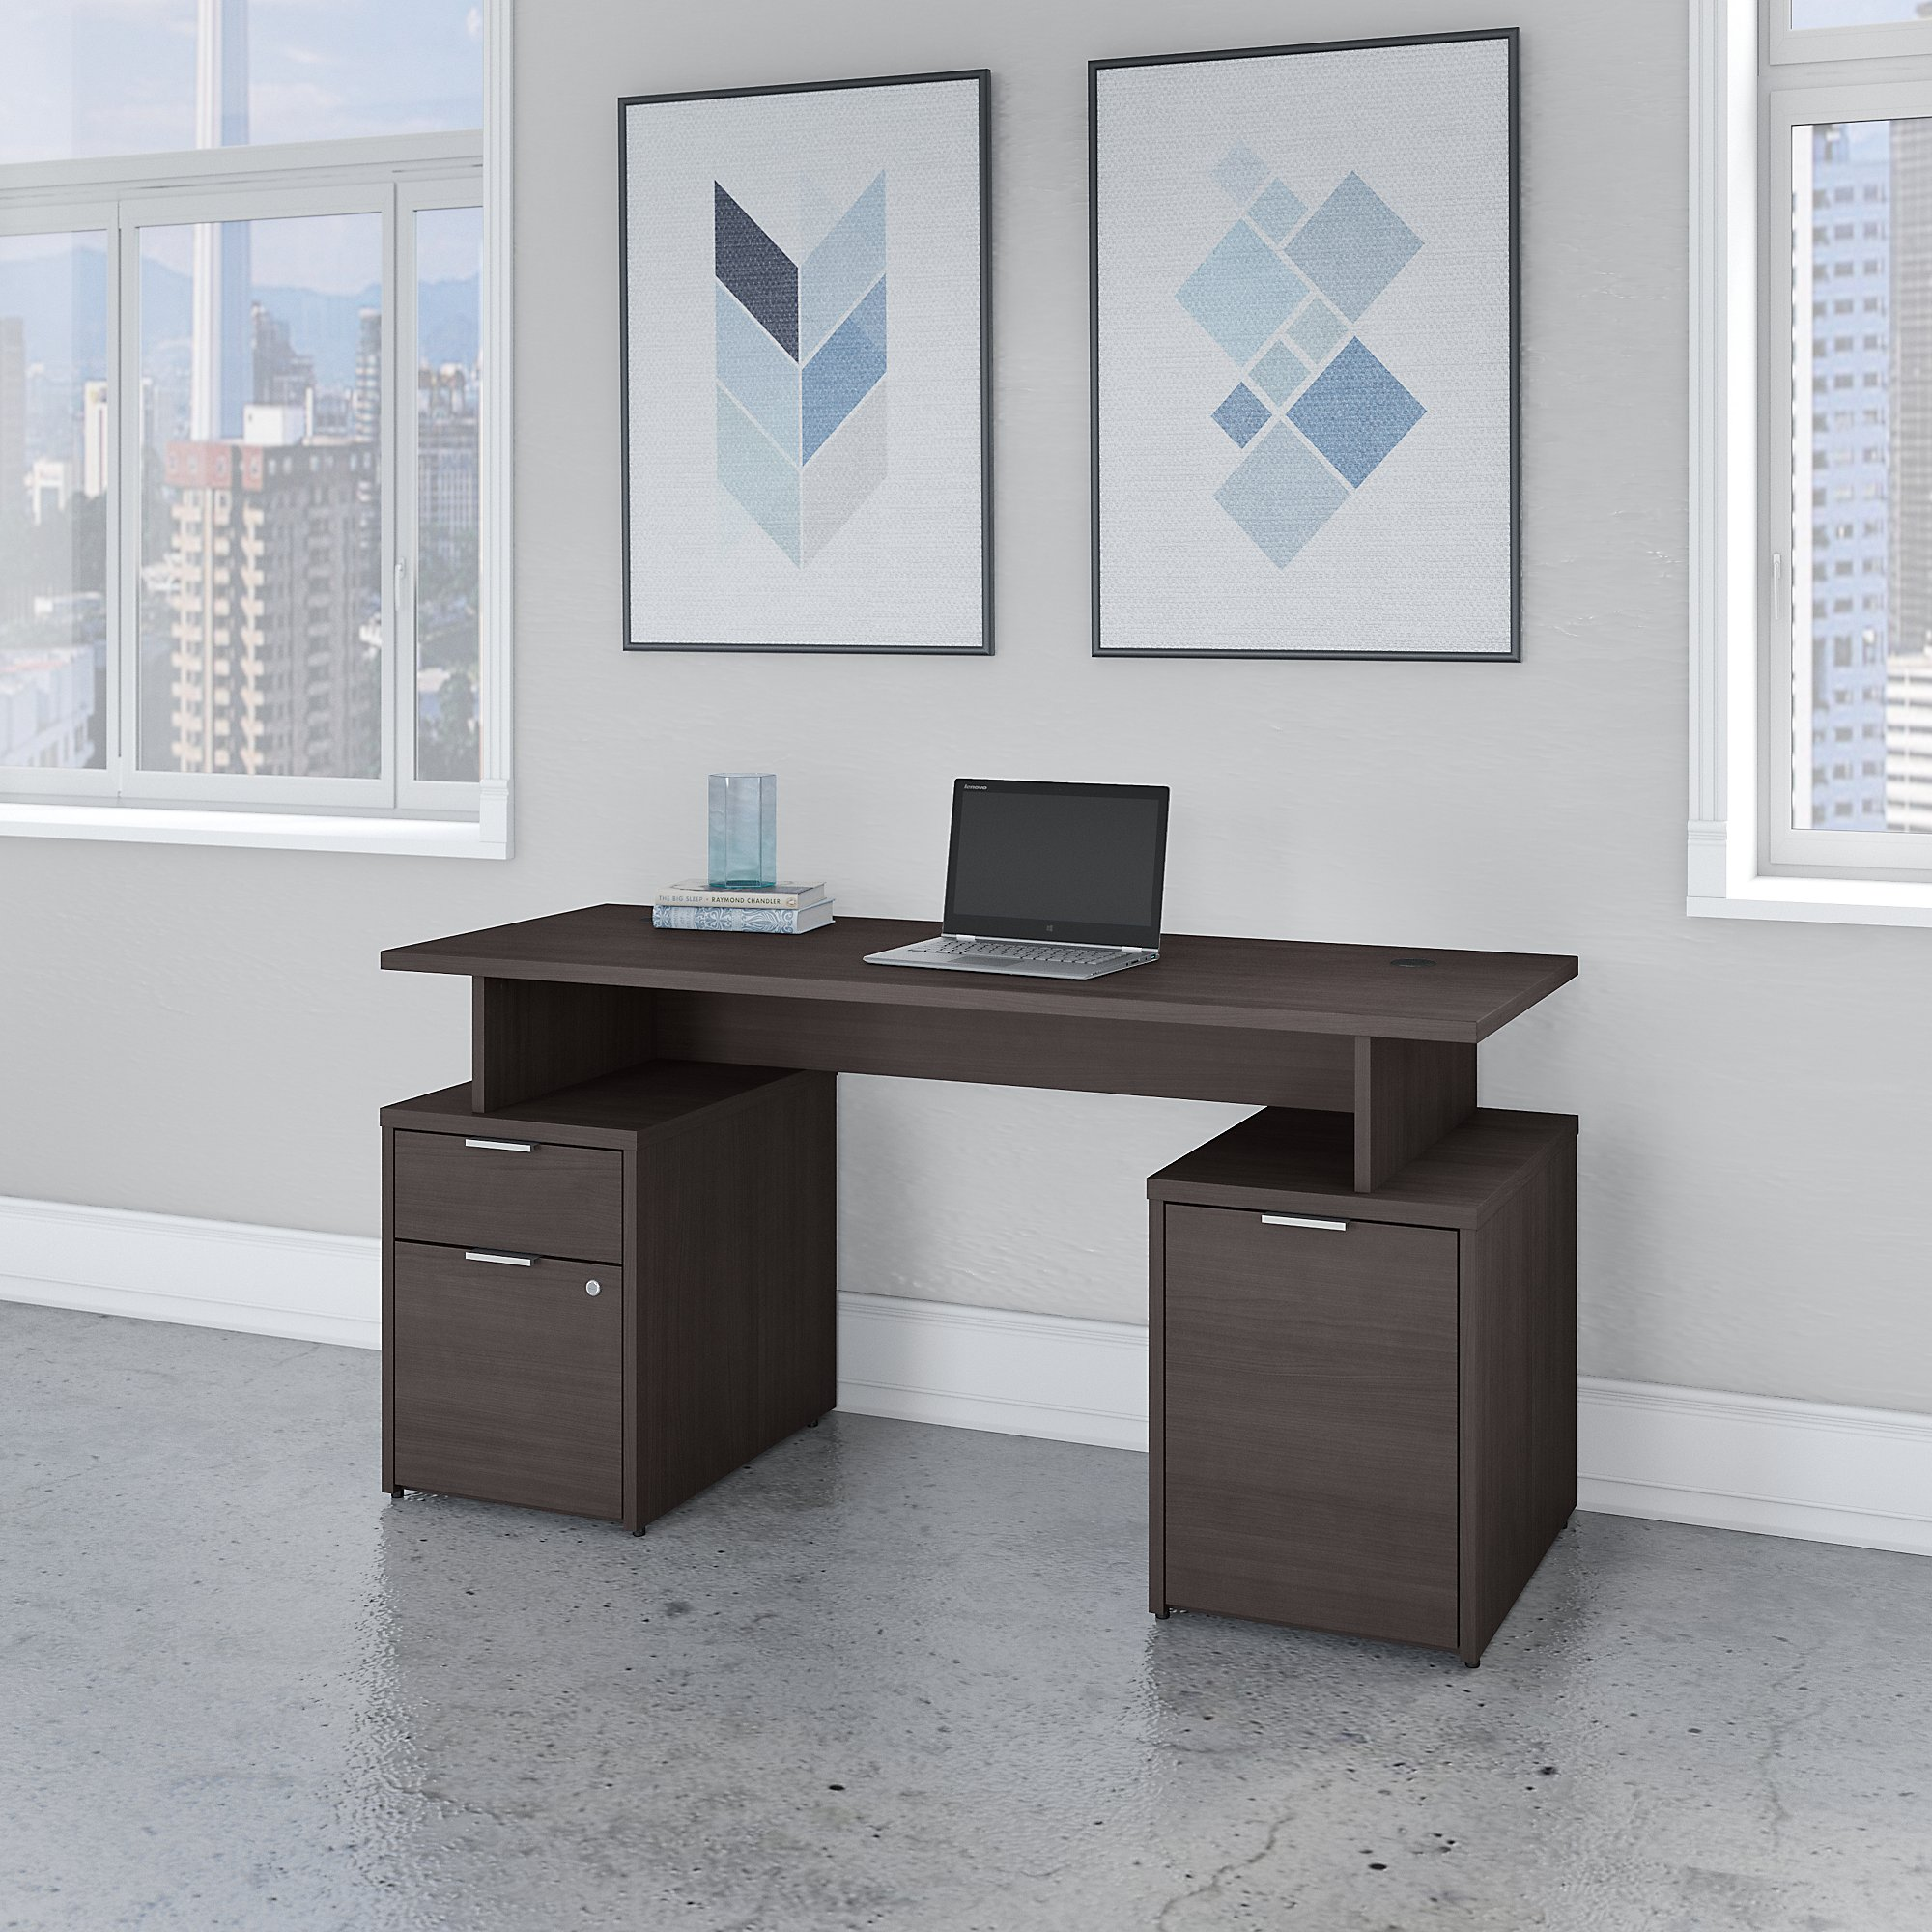 Bush Business Furniture Jamestown 60W Desk with Drawers and Small Storage Cabinet